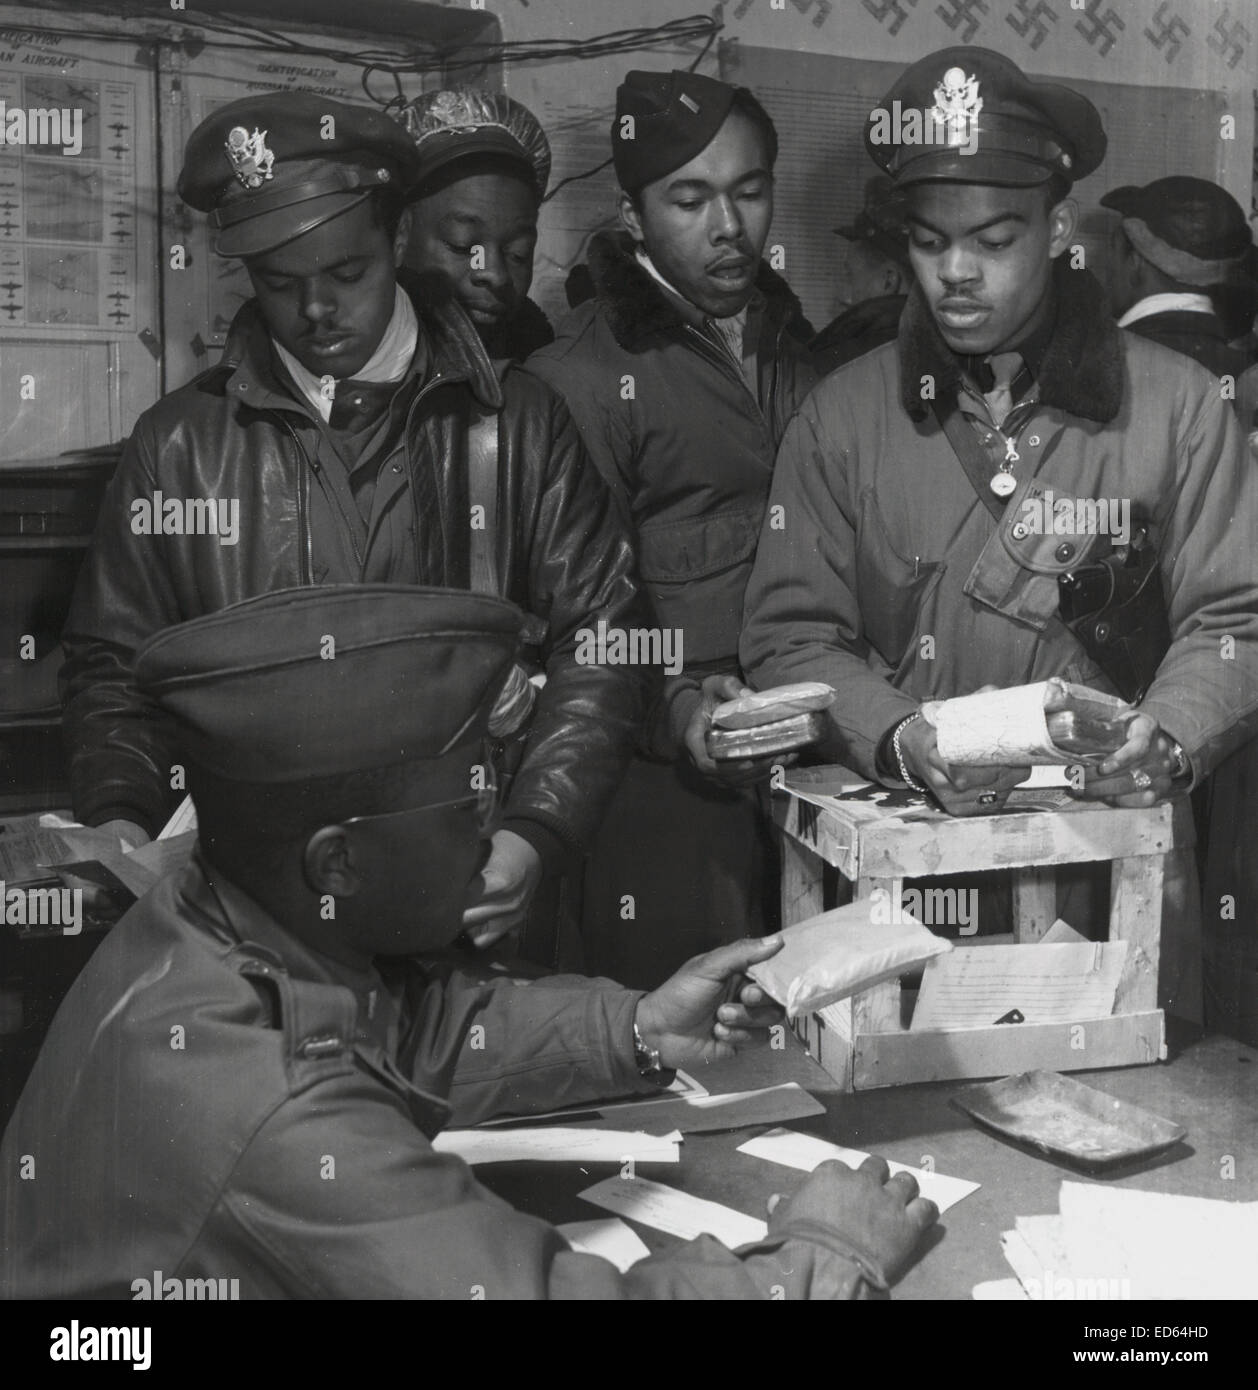 Tuskegee Airmen 332nd Fighter Group fighter pilots receive 'Escape kits' (cyanide)  in southern Italy, 1945 - Stock Image